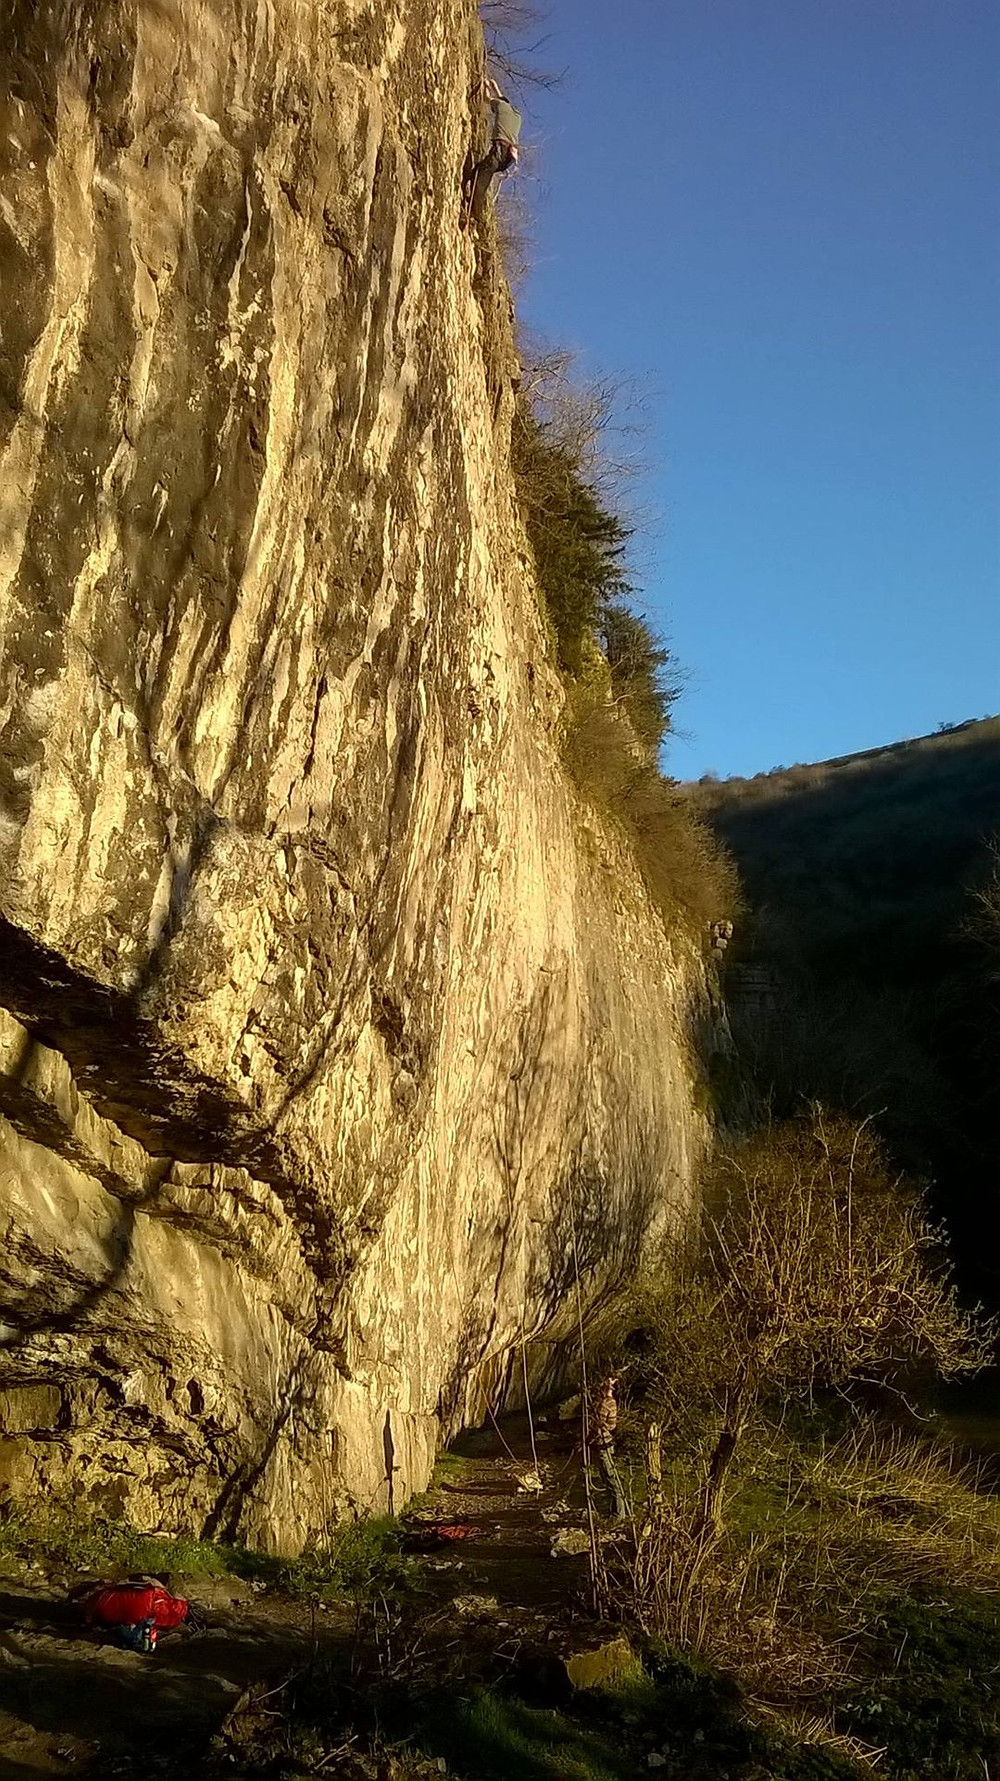 A limestone rockface in the Peak District in the evening sun. The base is dirt from teh passage of feet and the features on teh faces are covered in climber's chalk.